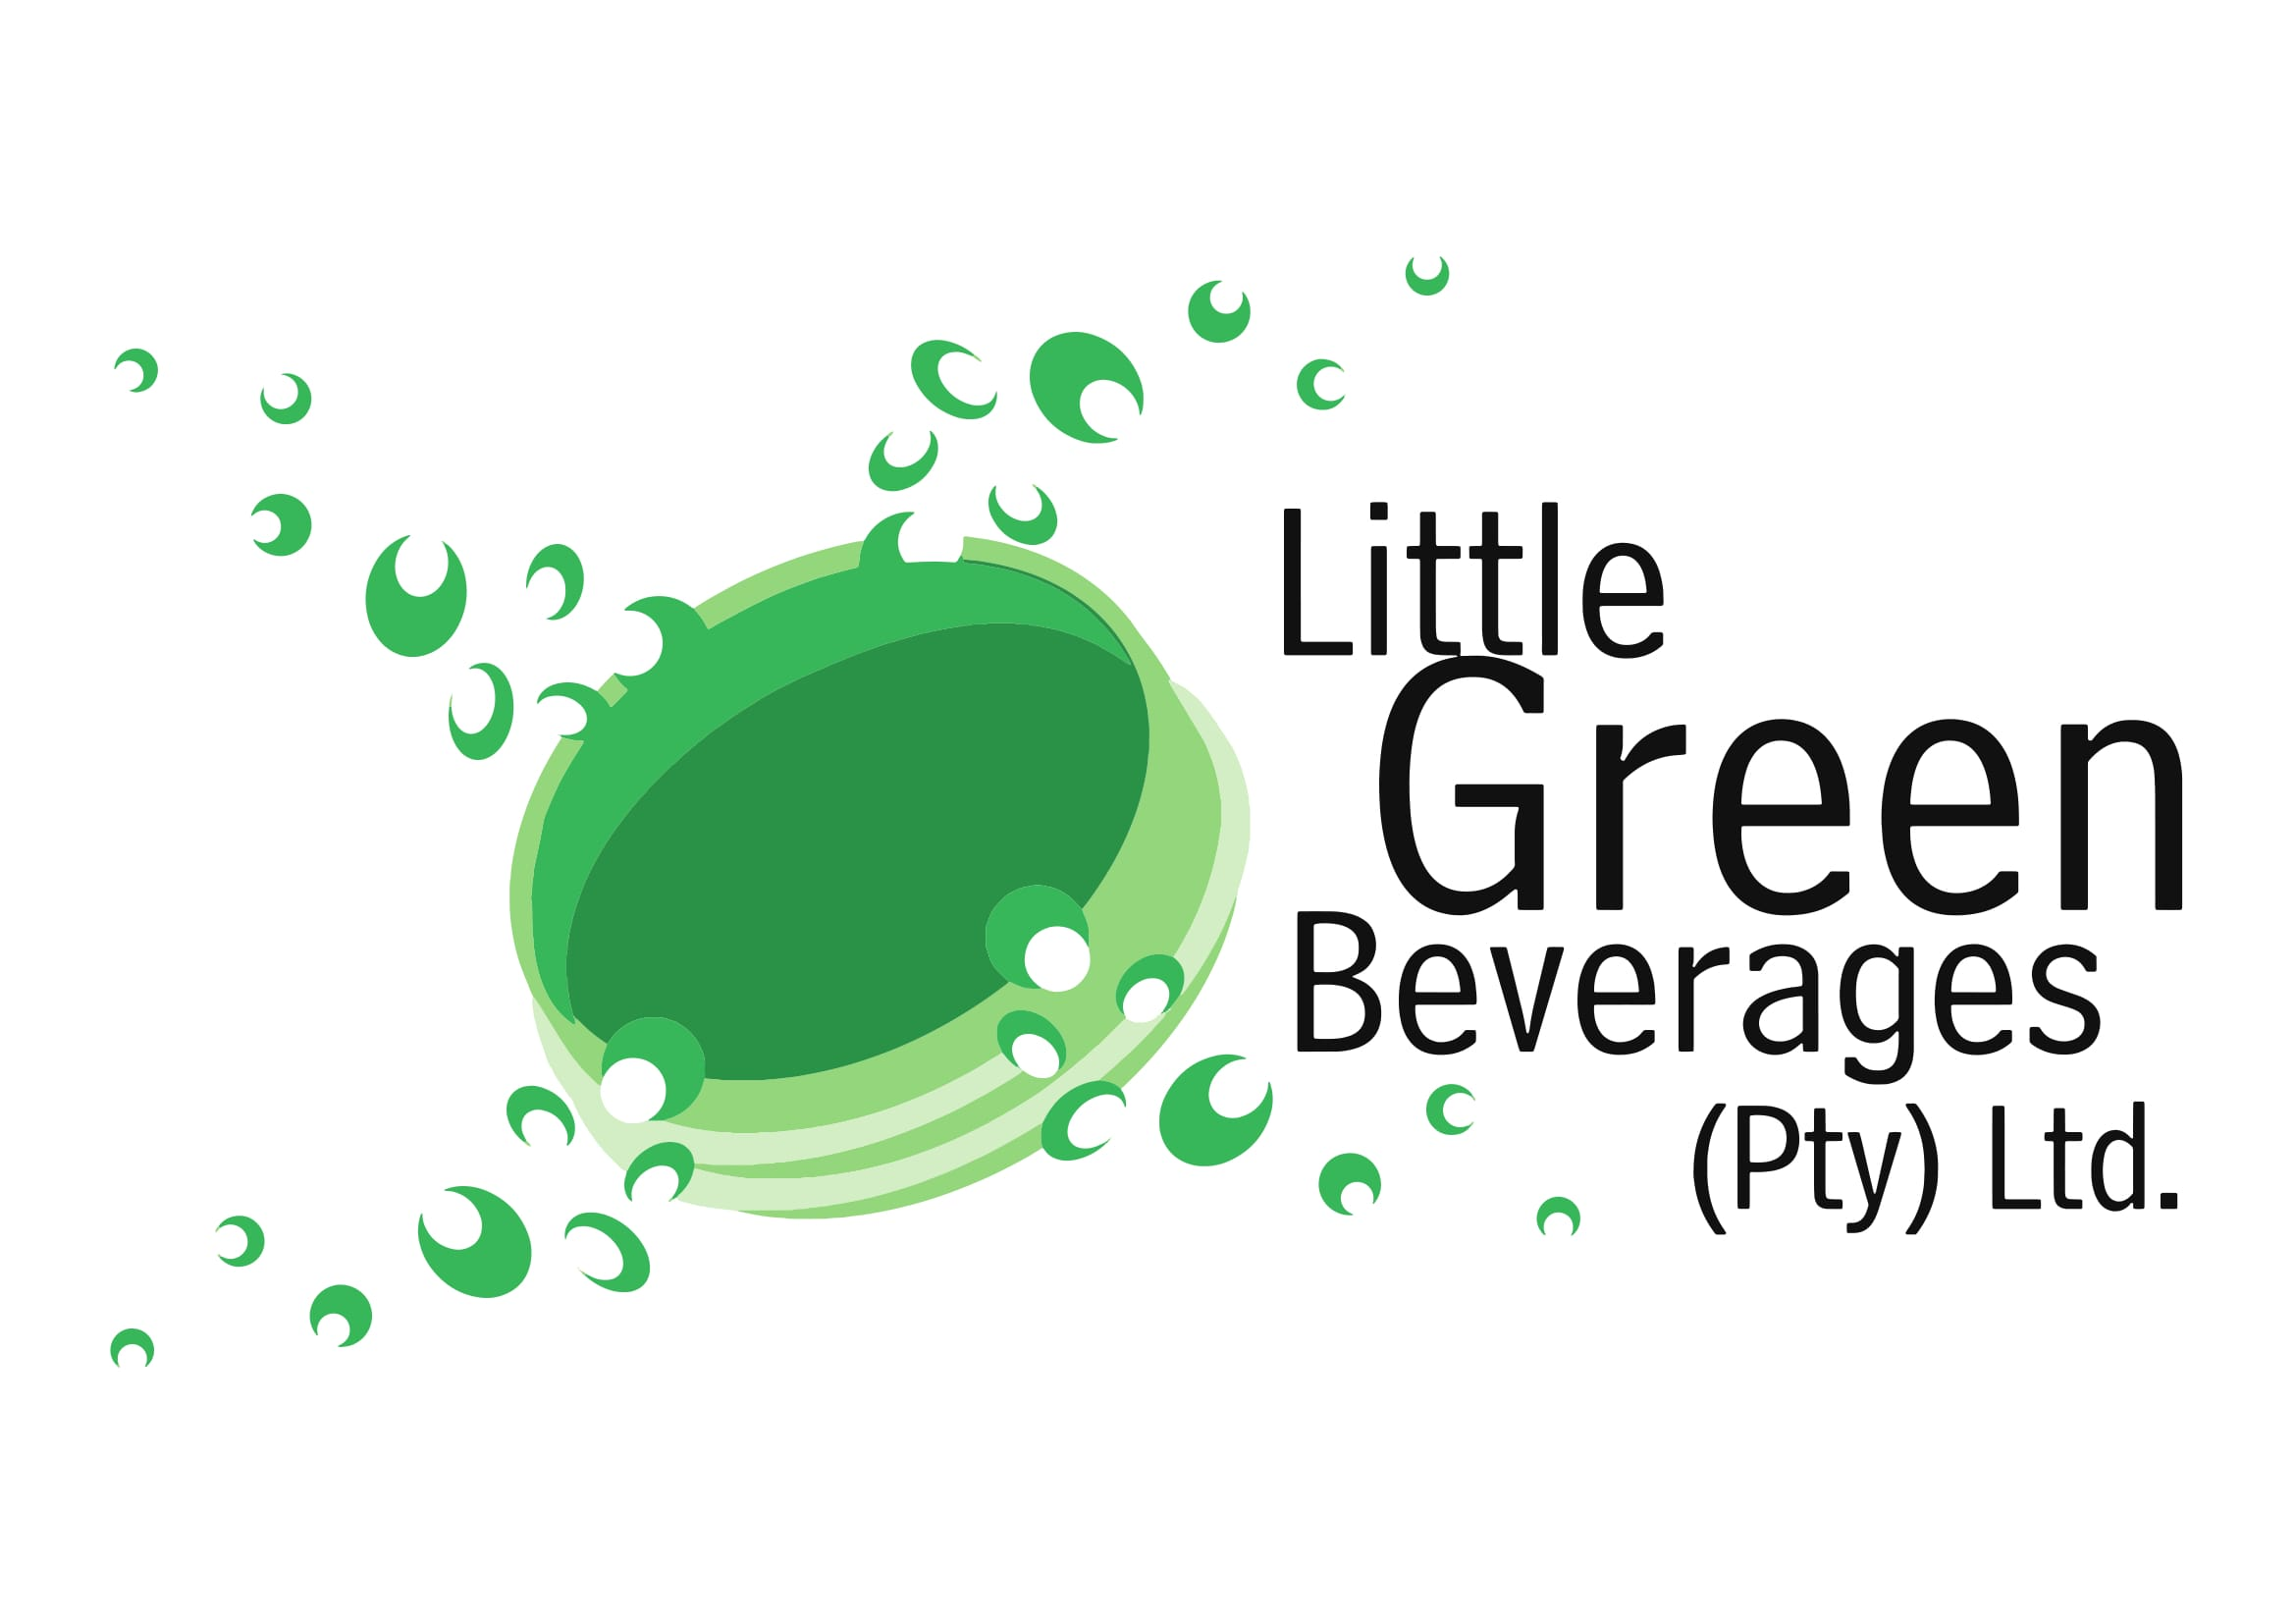 Little Green Beverages (Pty) Ltd.